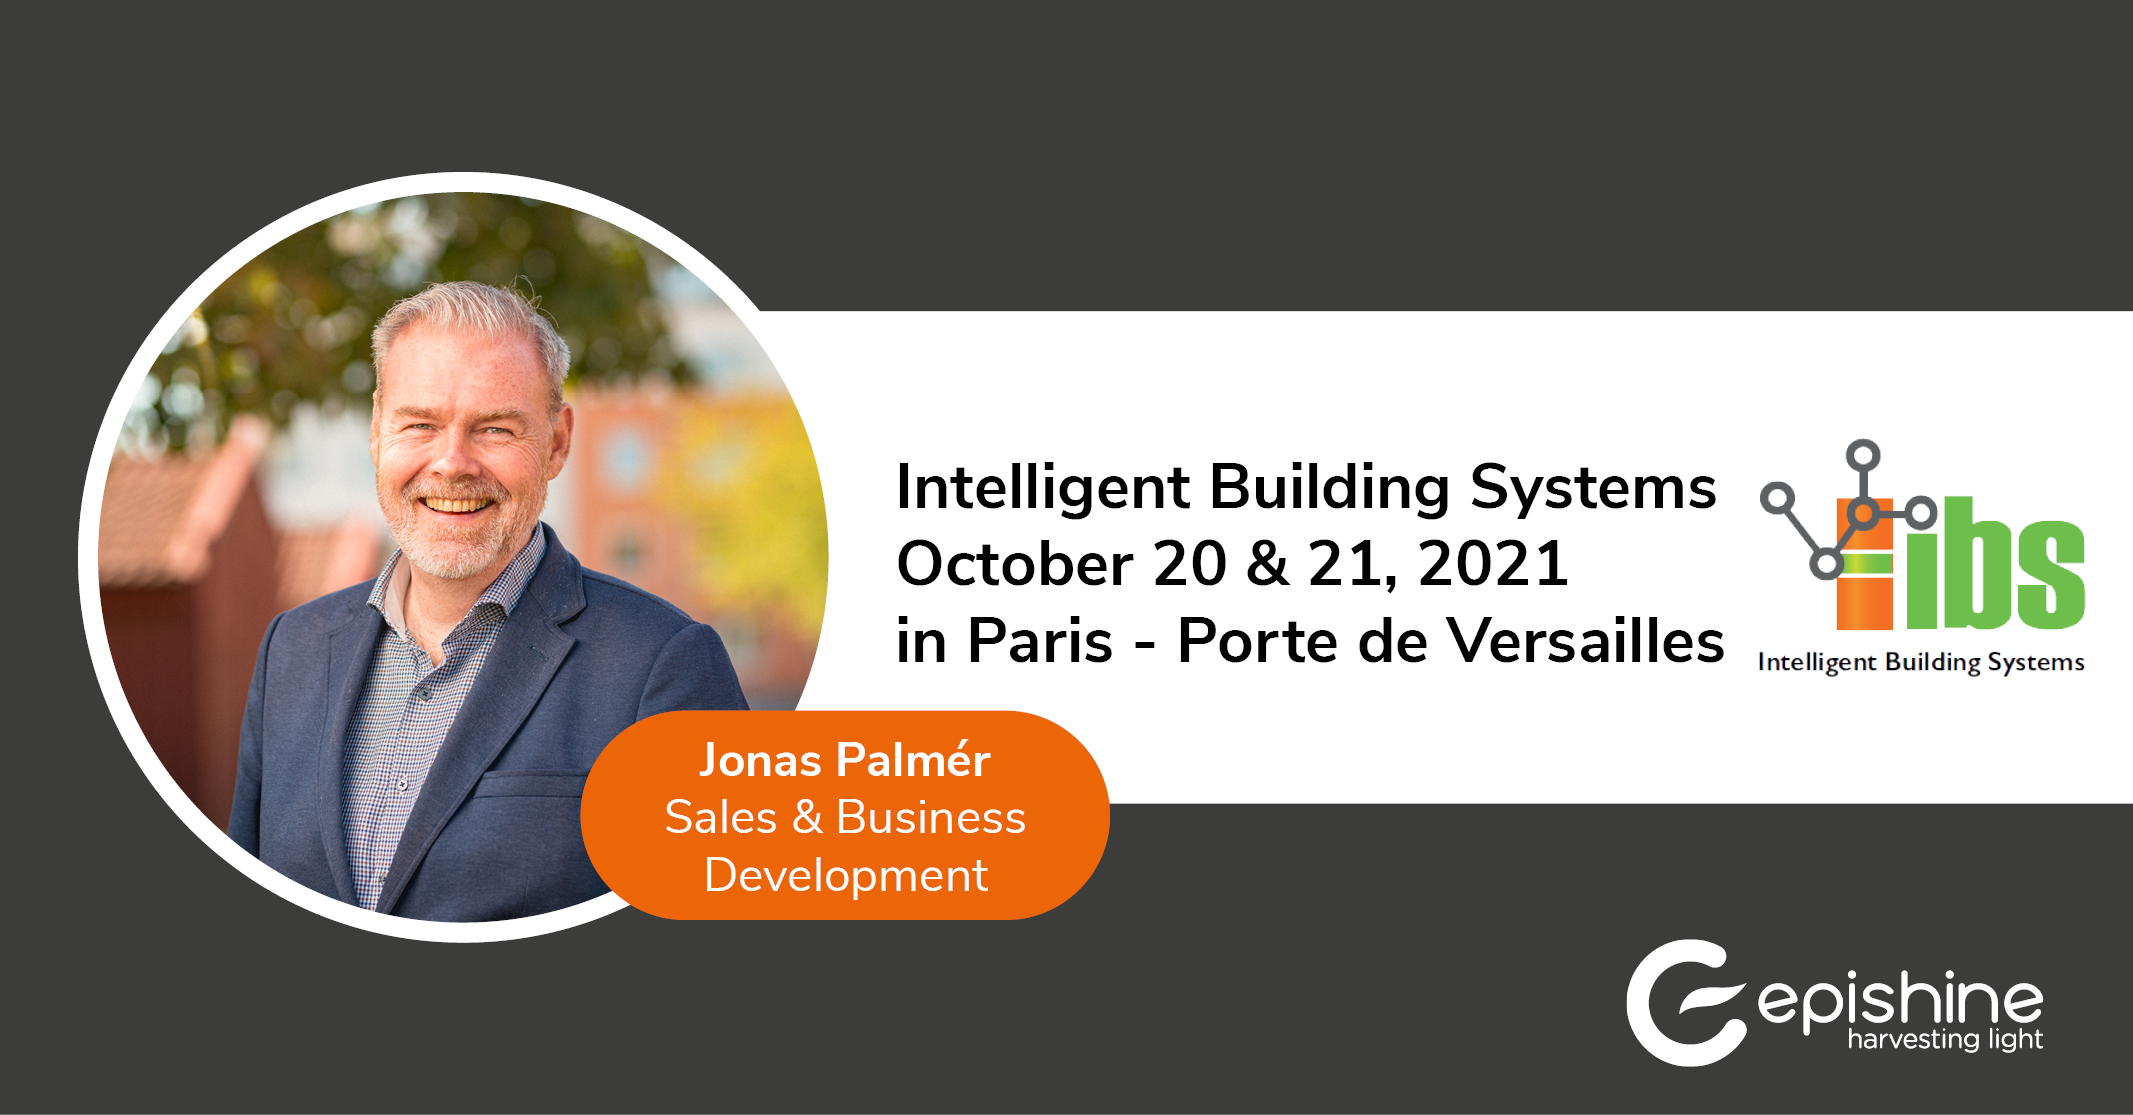 Jonas Palmér, Sales & Business Development at Epishine are at the exhibition IBS on October 20-21, 2021.